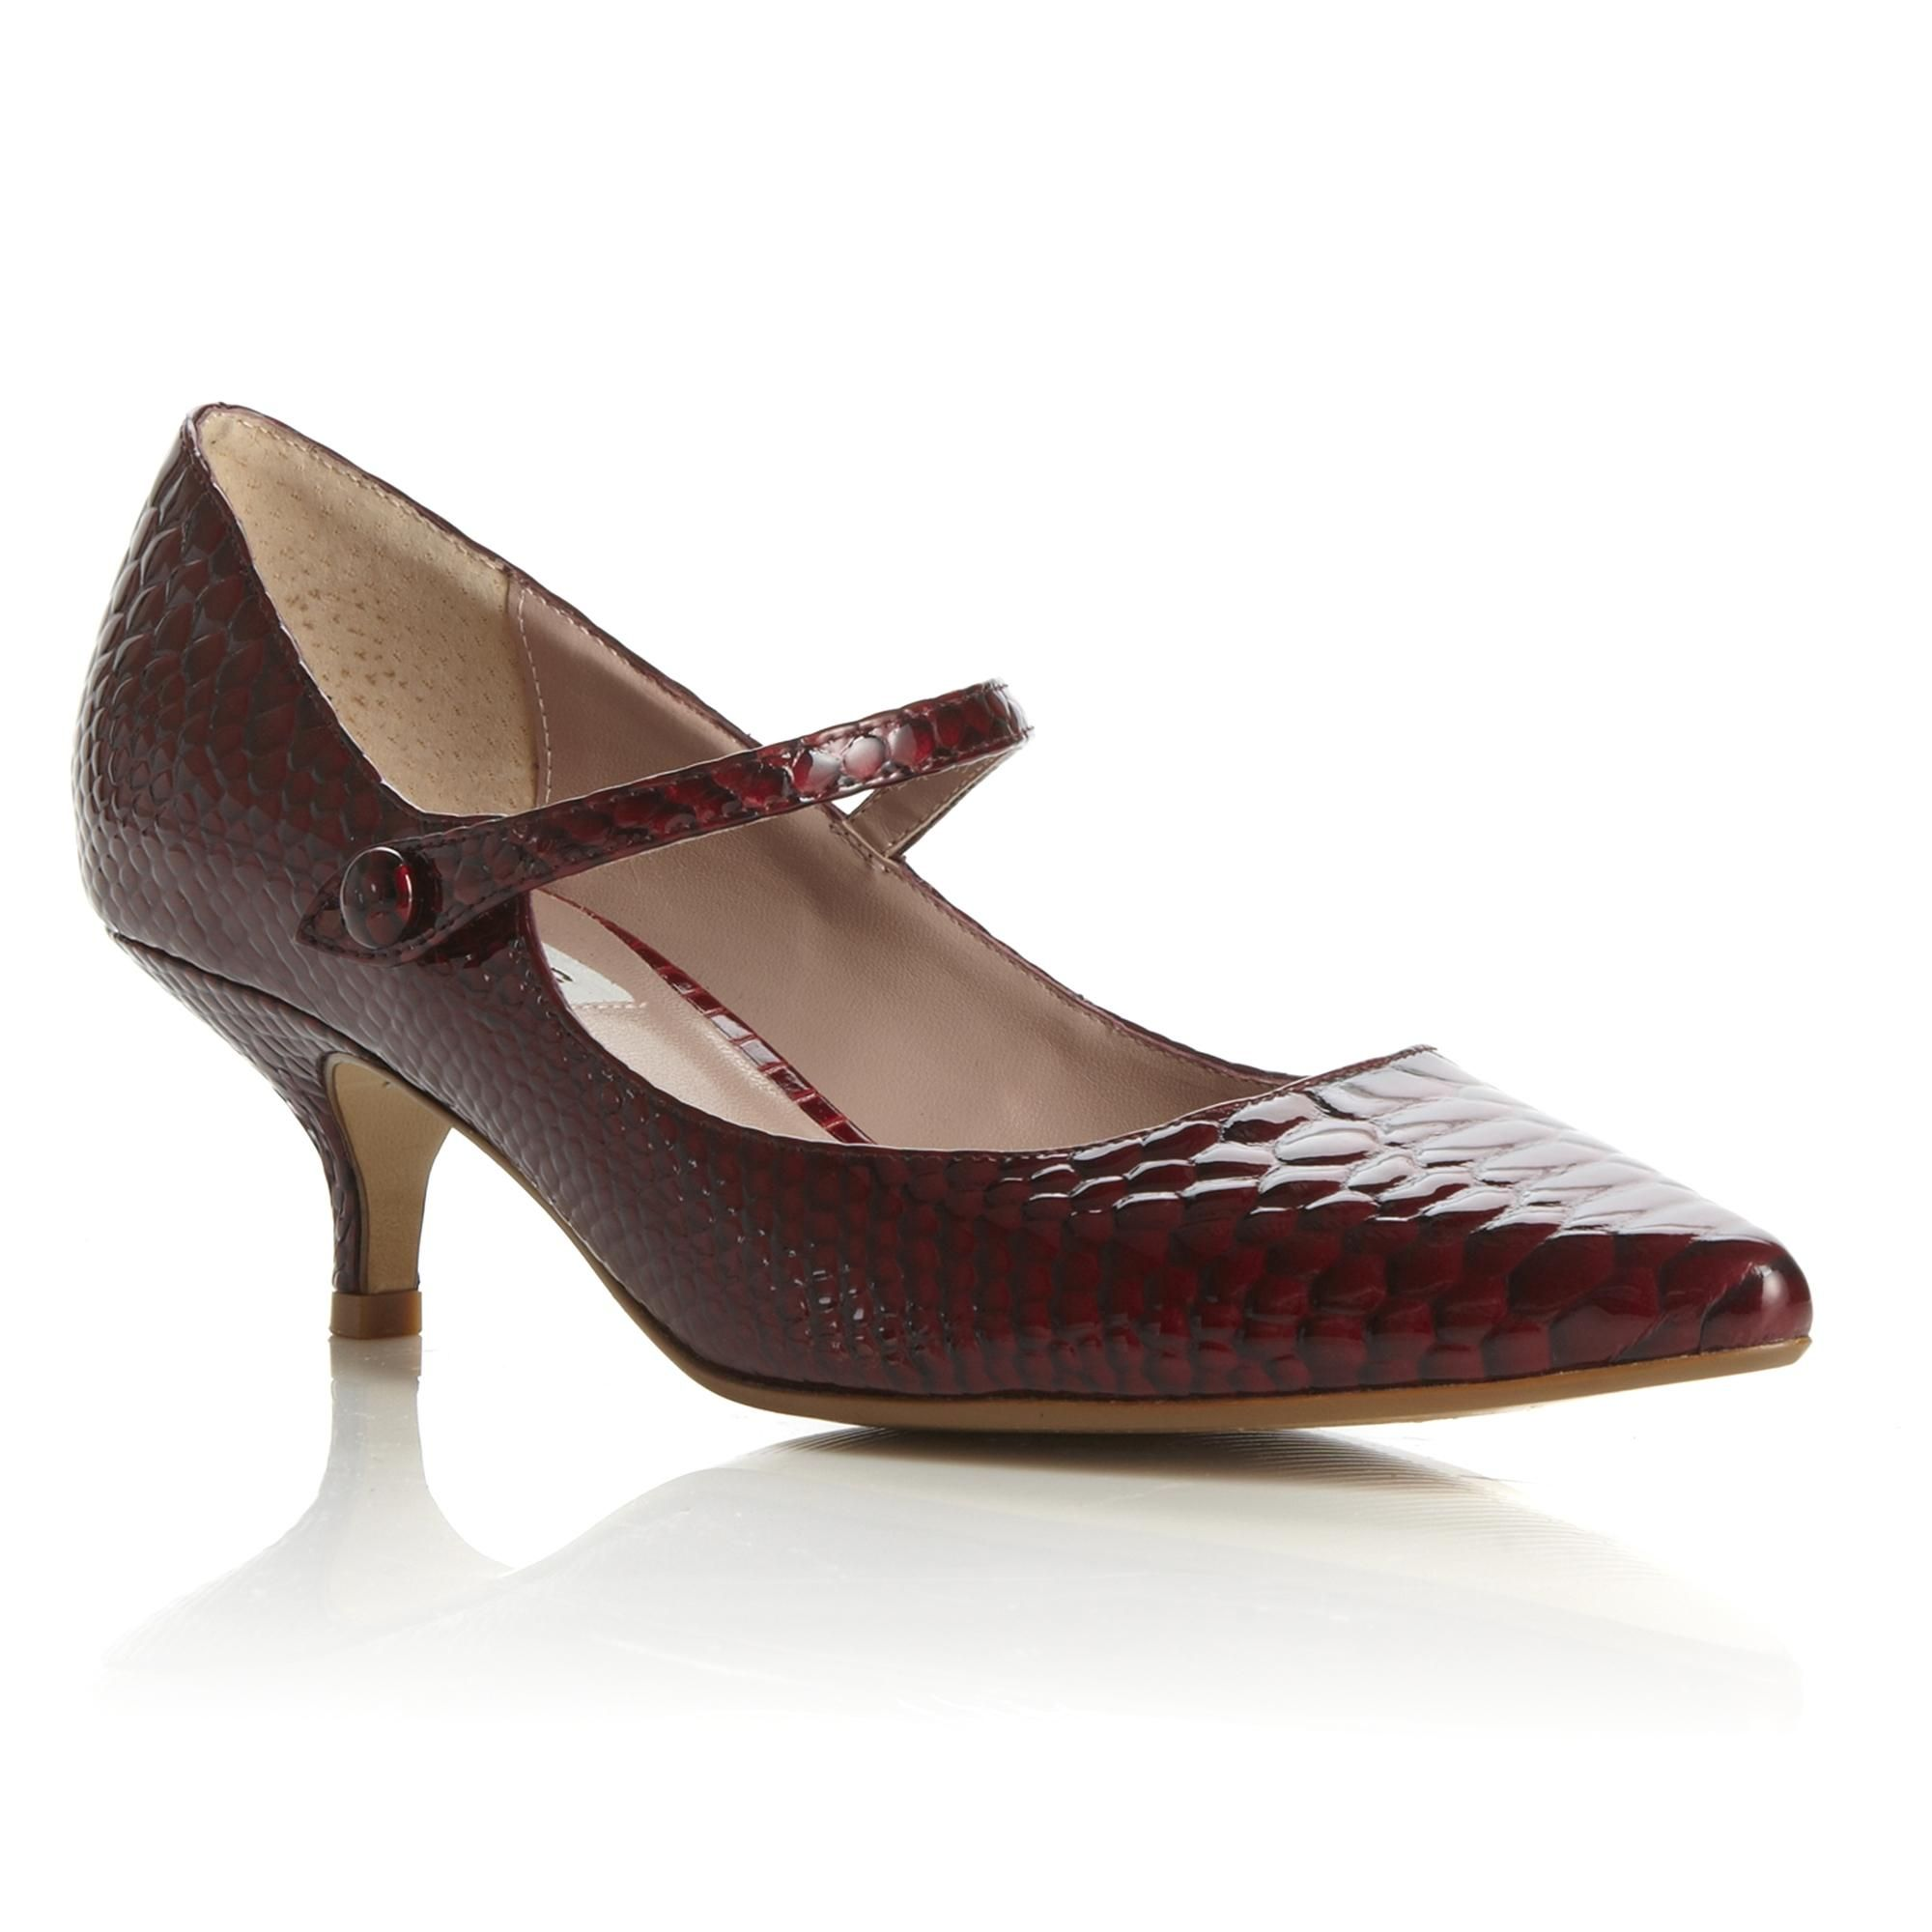 DUNE LADIES APPLEFORD - Kitten Heel Pointed Toe Mary Jane ...